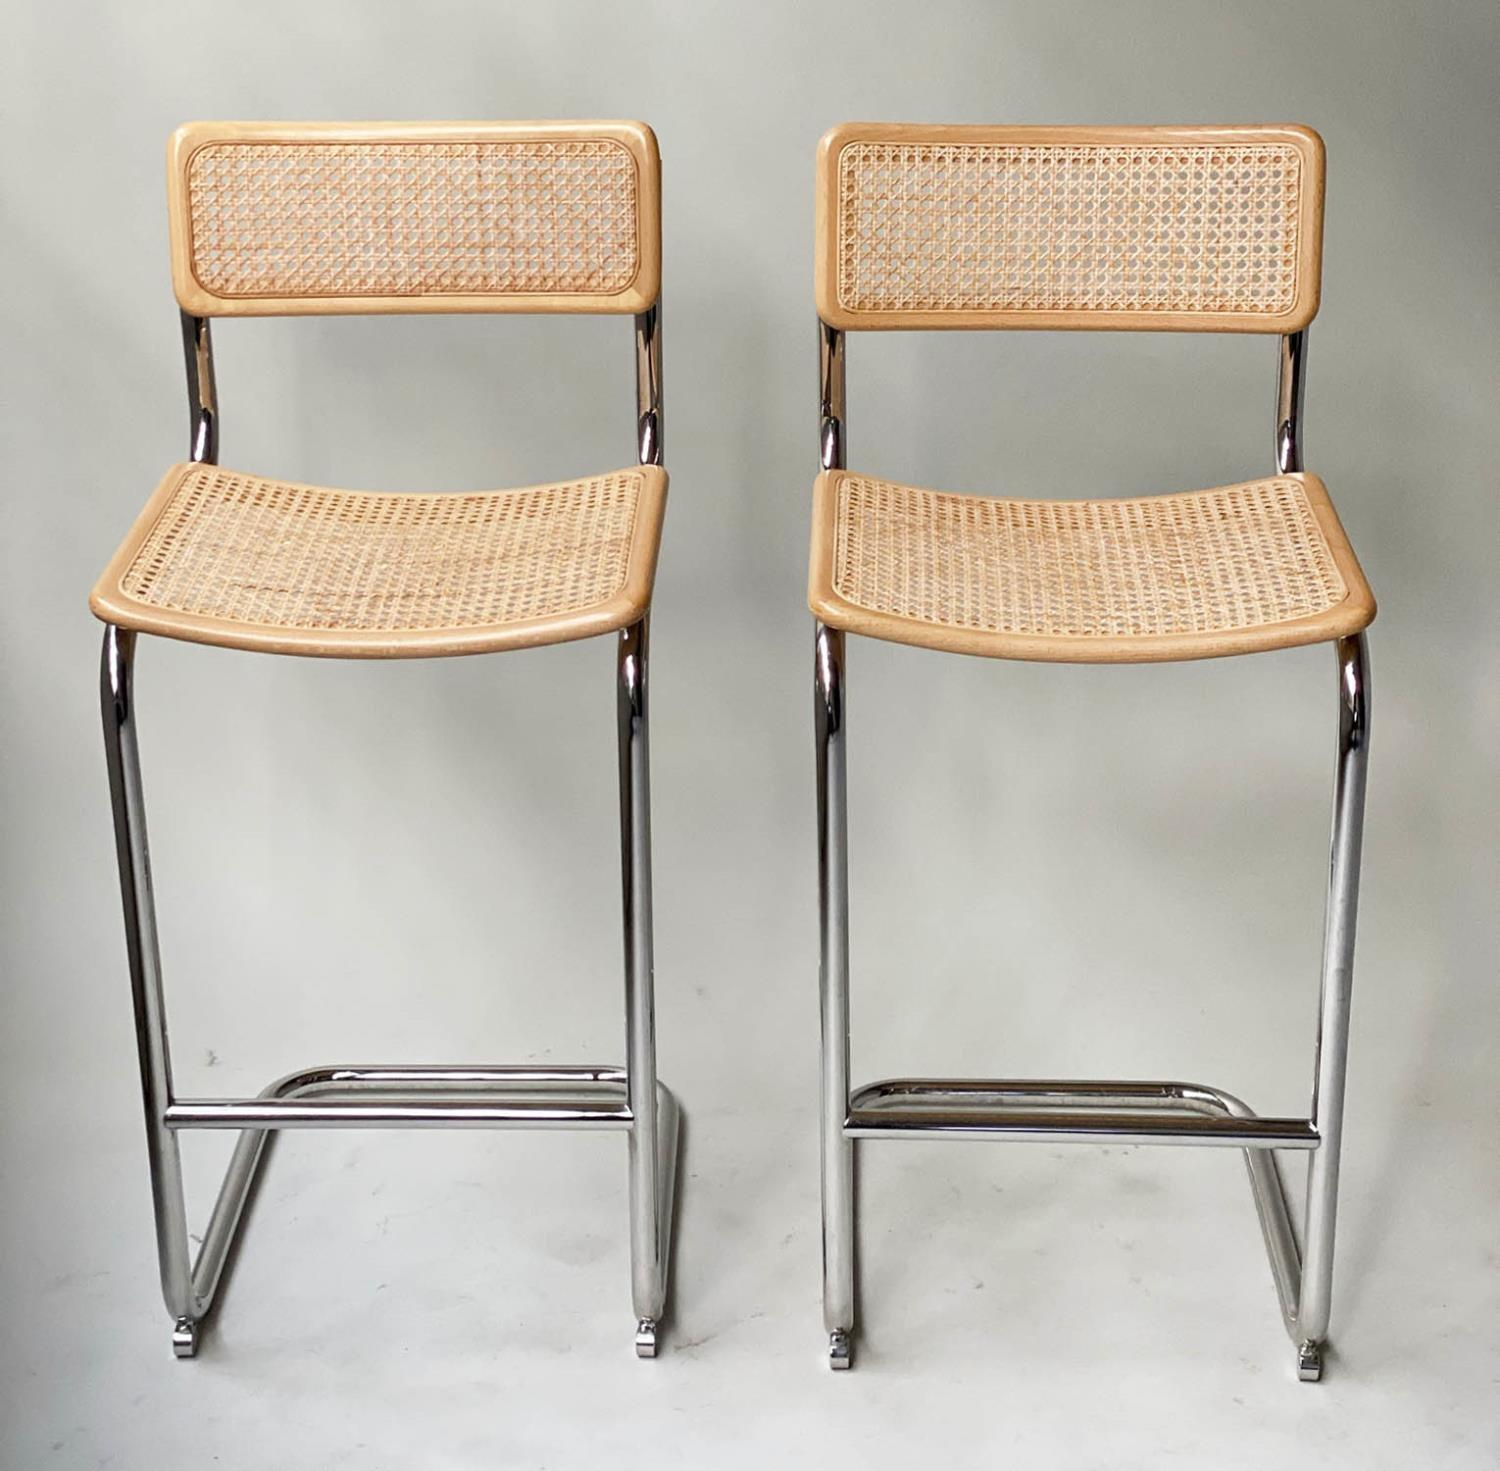 MARCEL BREUER INSPIRED BAR CHAIRS, a pair, Cesca style design, beechwood, cane panelled and chrome